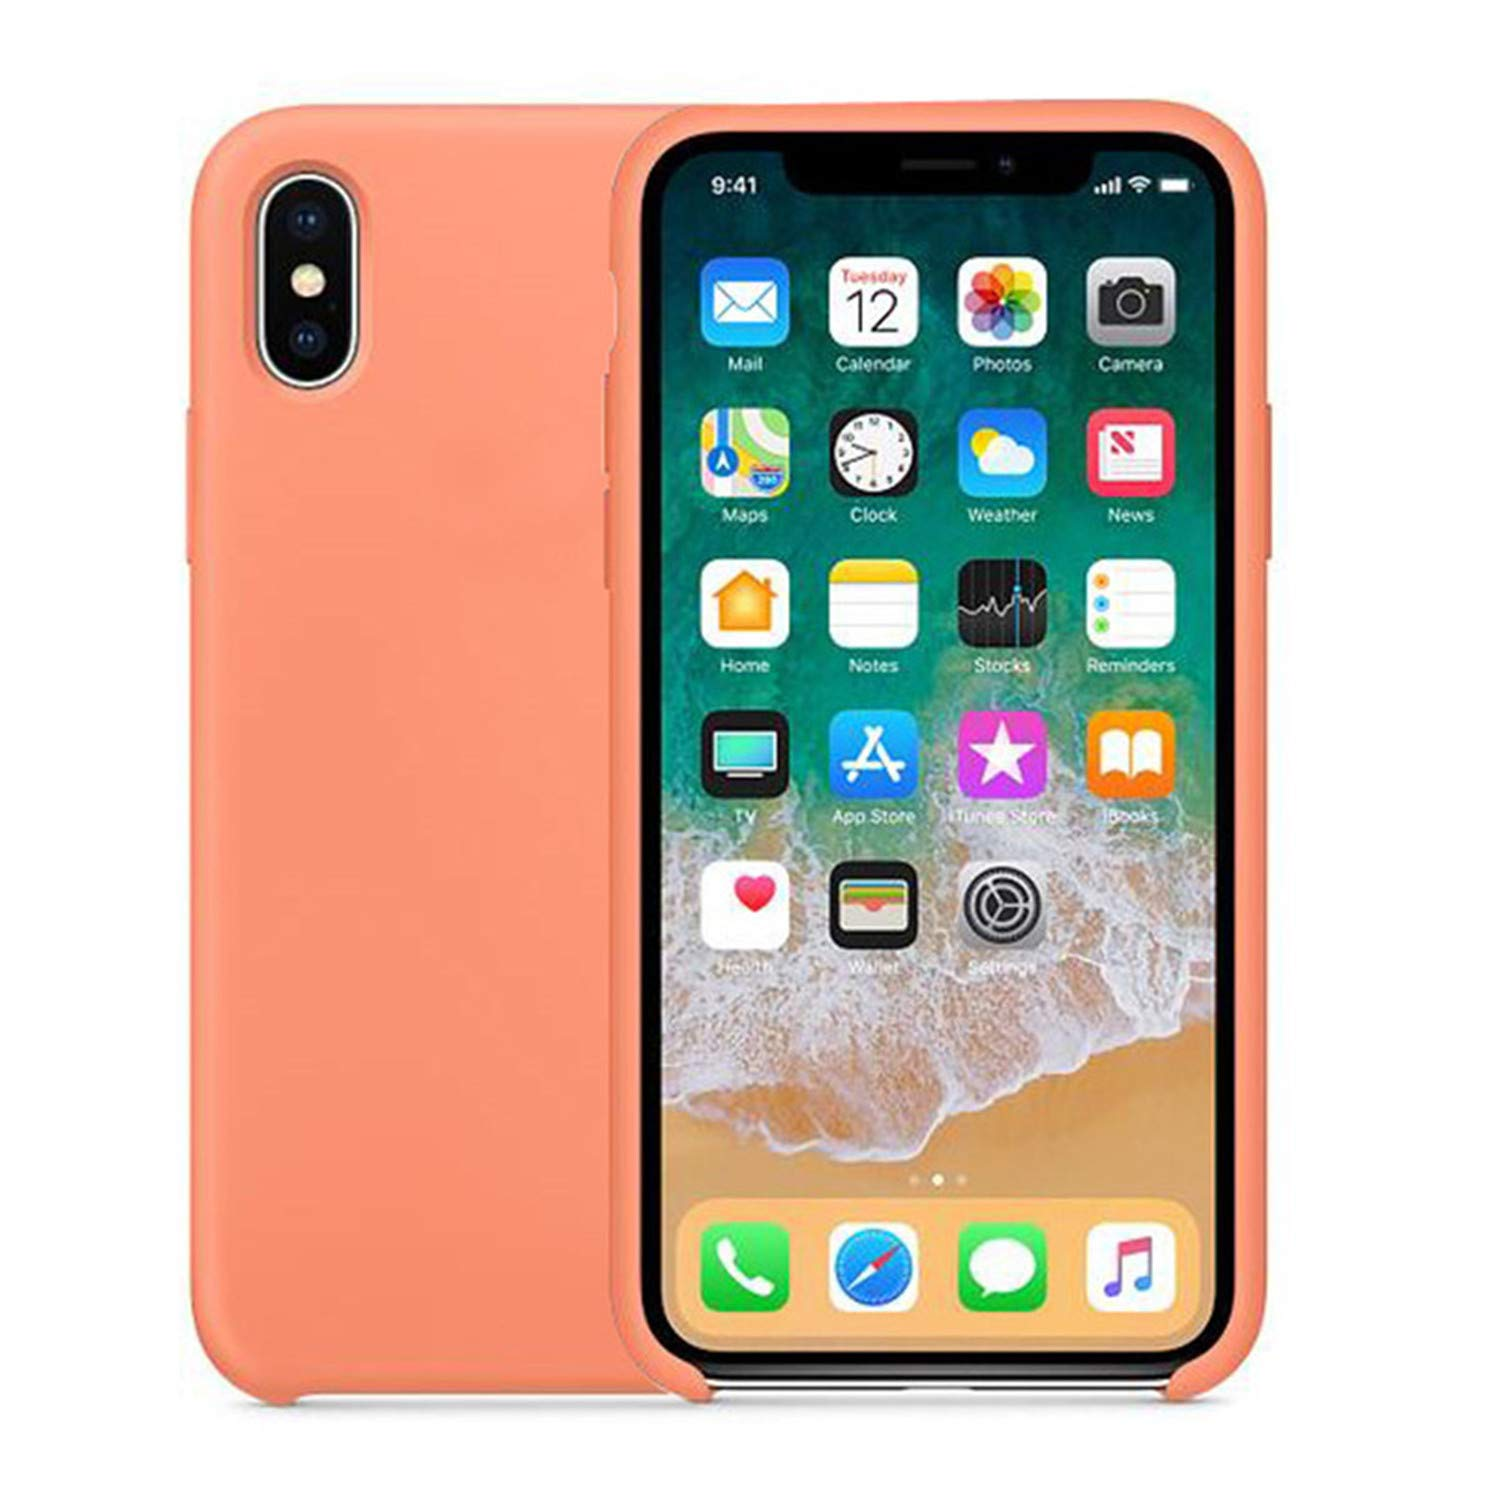 Original with Logo Silicone Phone Case for iPhone 7 6 8 Plus Official Cover for Apple Cases for iPhone X 6s 5 5s SE Peach for iPhone 6 6s